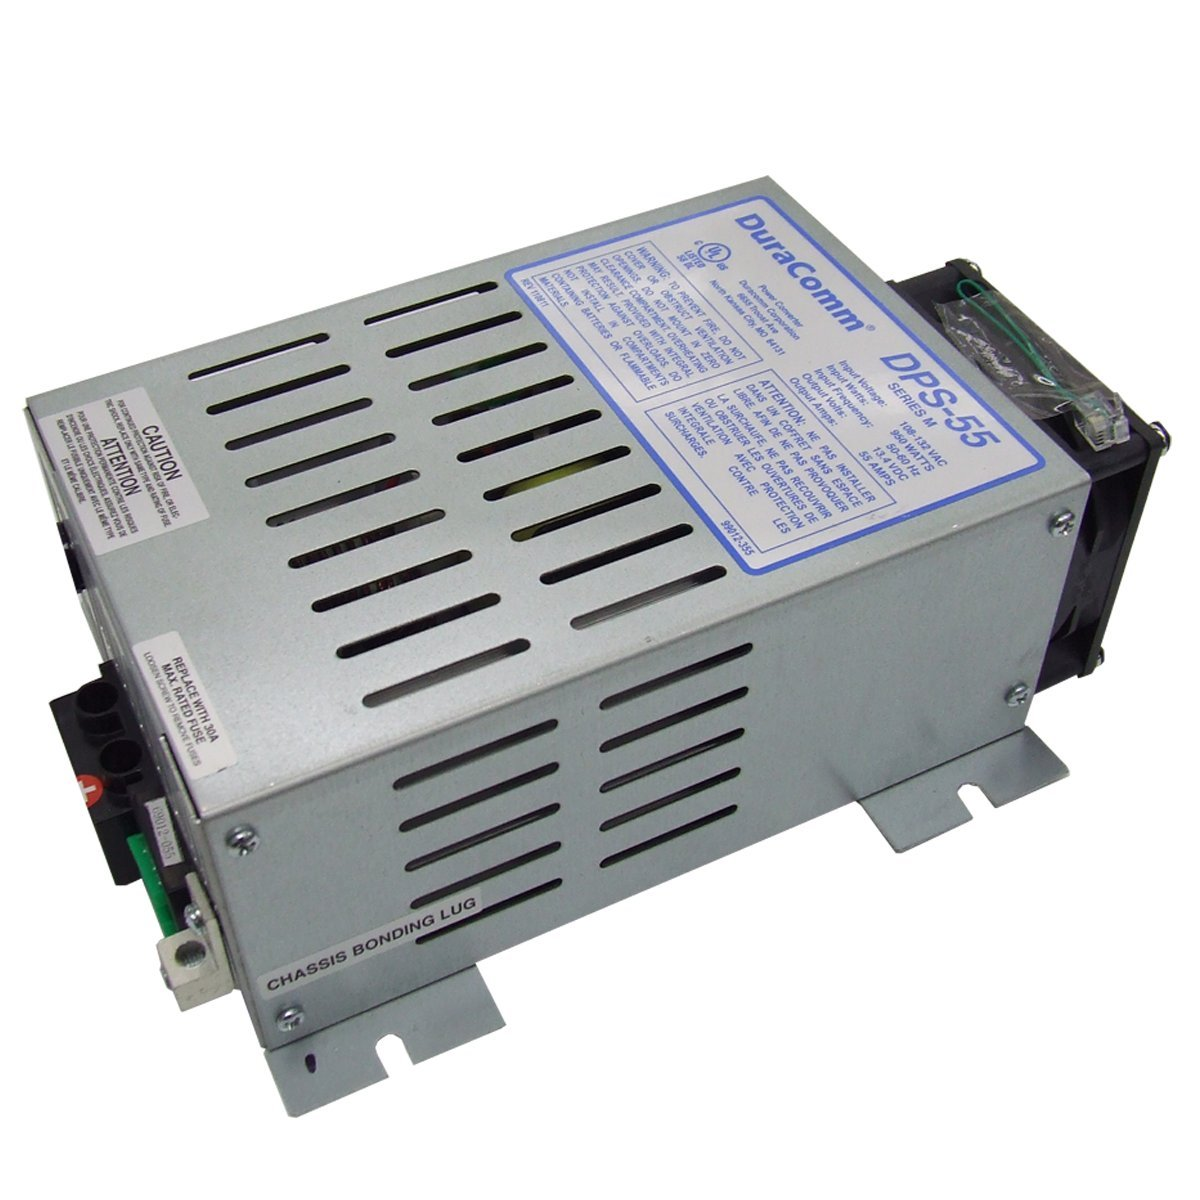 DuraComm DPS-55 Power Source Utilities with Low Noise Supply